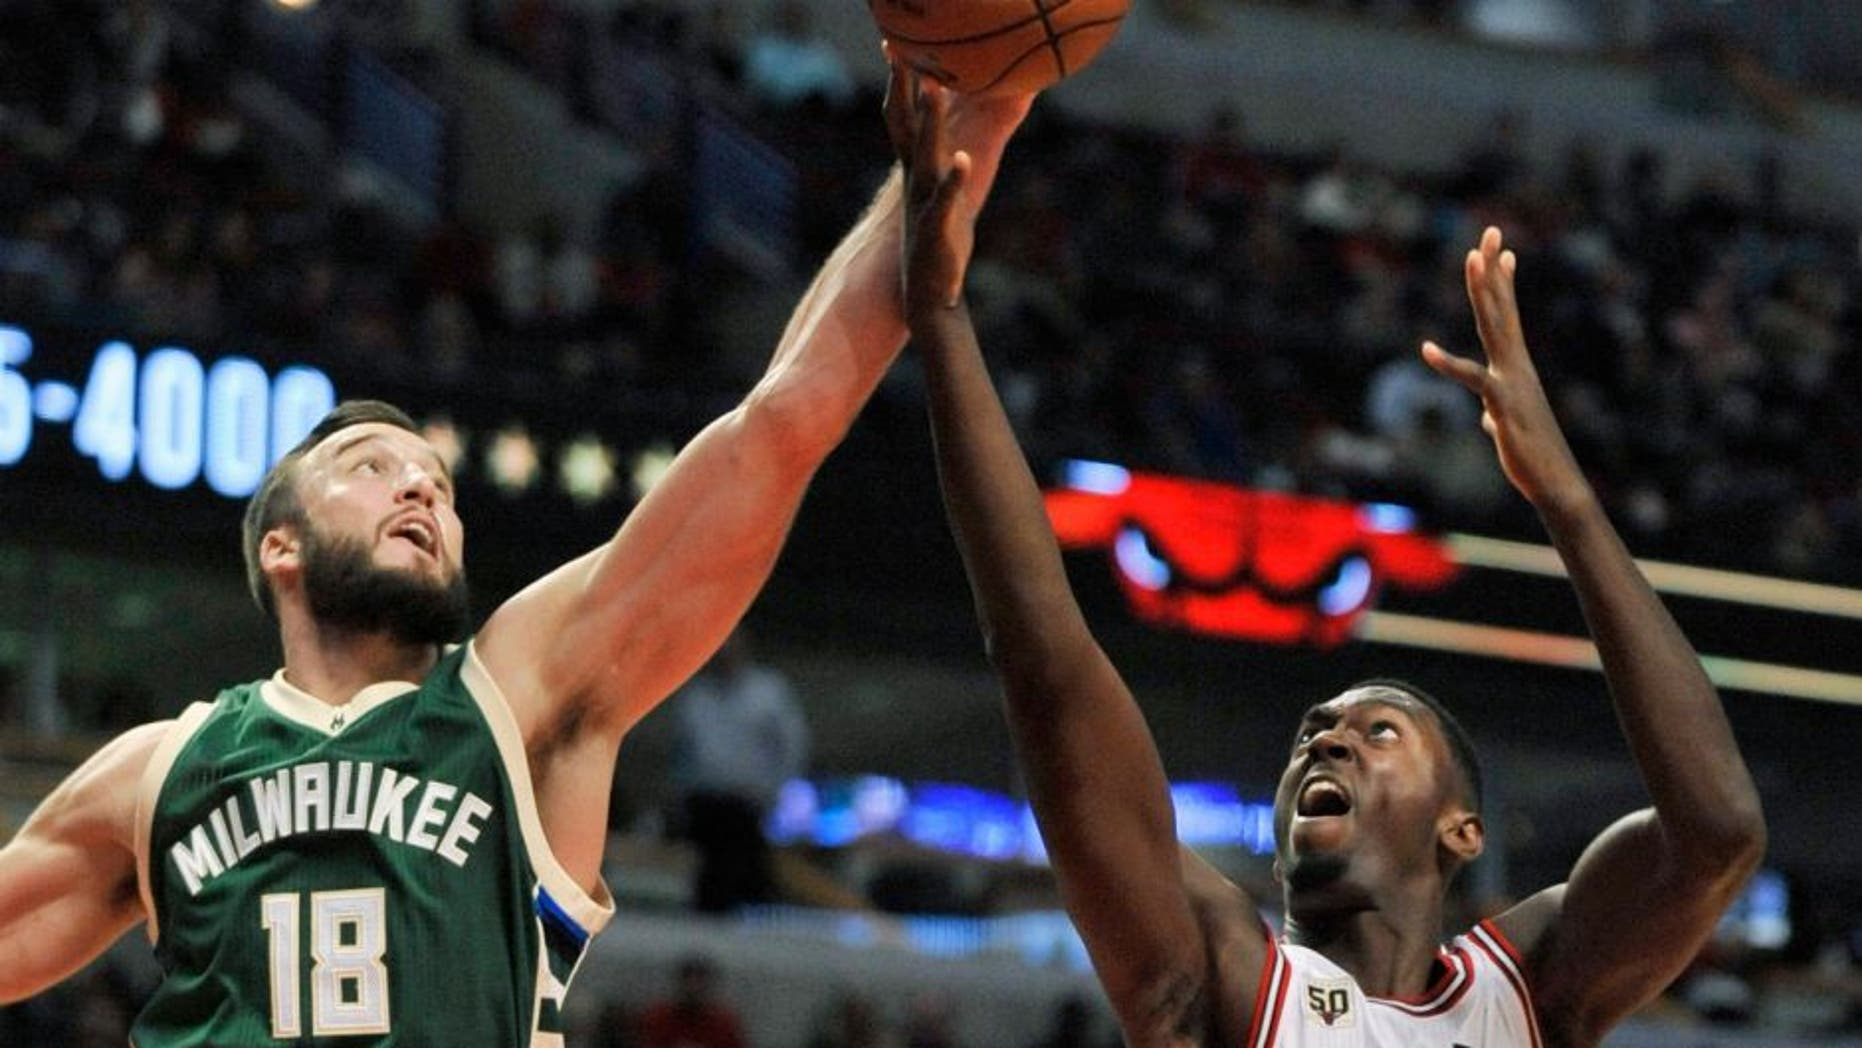 Chicago Bulls' Bobby Portis (5), battles for a rebound against Milwaukee Bucks' Miles Plumlee (18) during the second half of an NBA preseason basketball game Tuesday, Oct. 6, 2015, in Chicago. The Bulls won 105-95. (AP Photo/Paul Beaty)